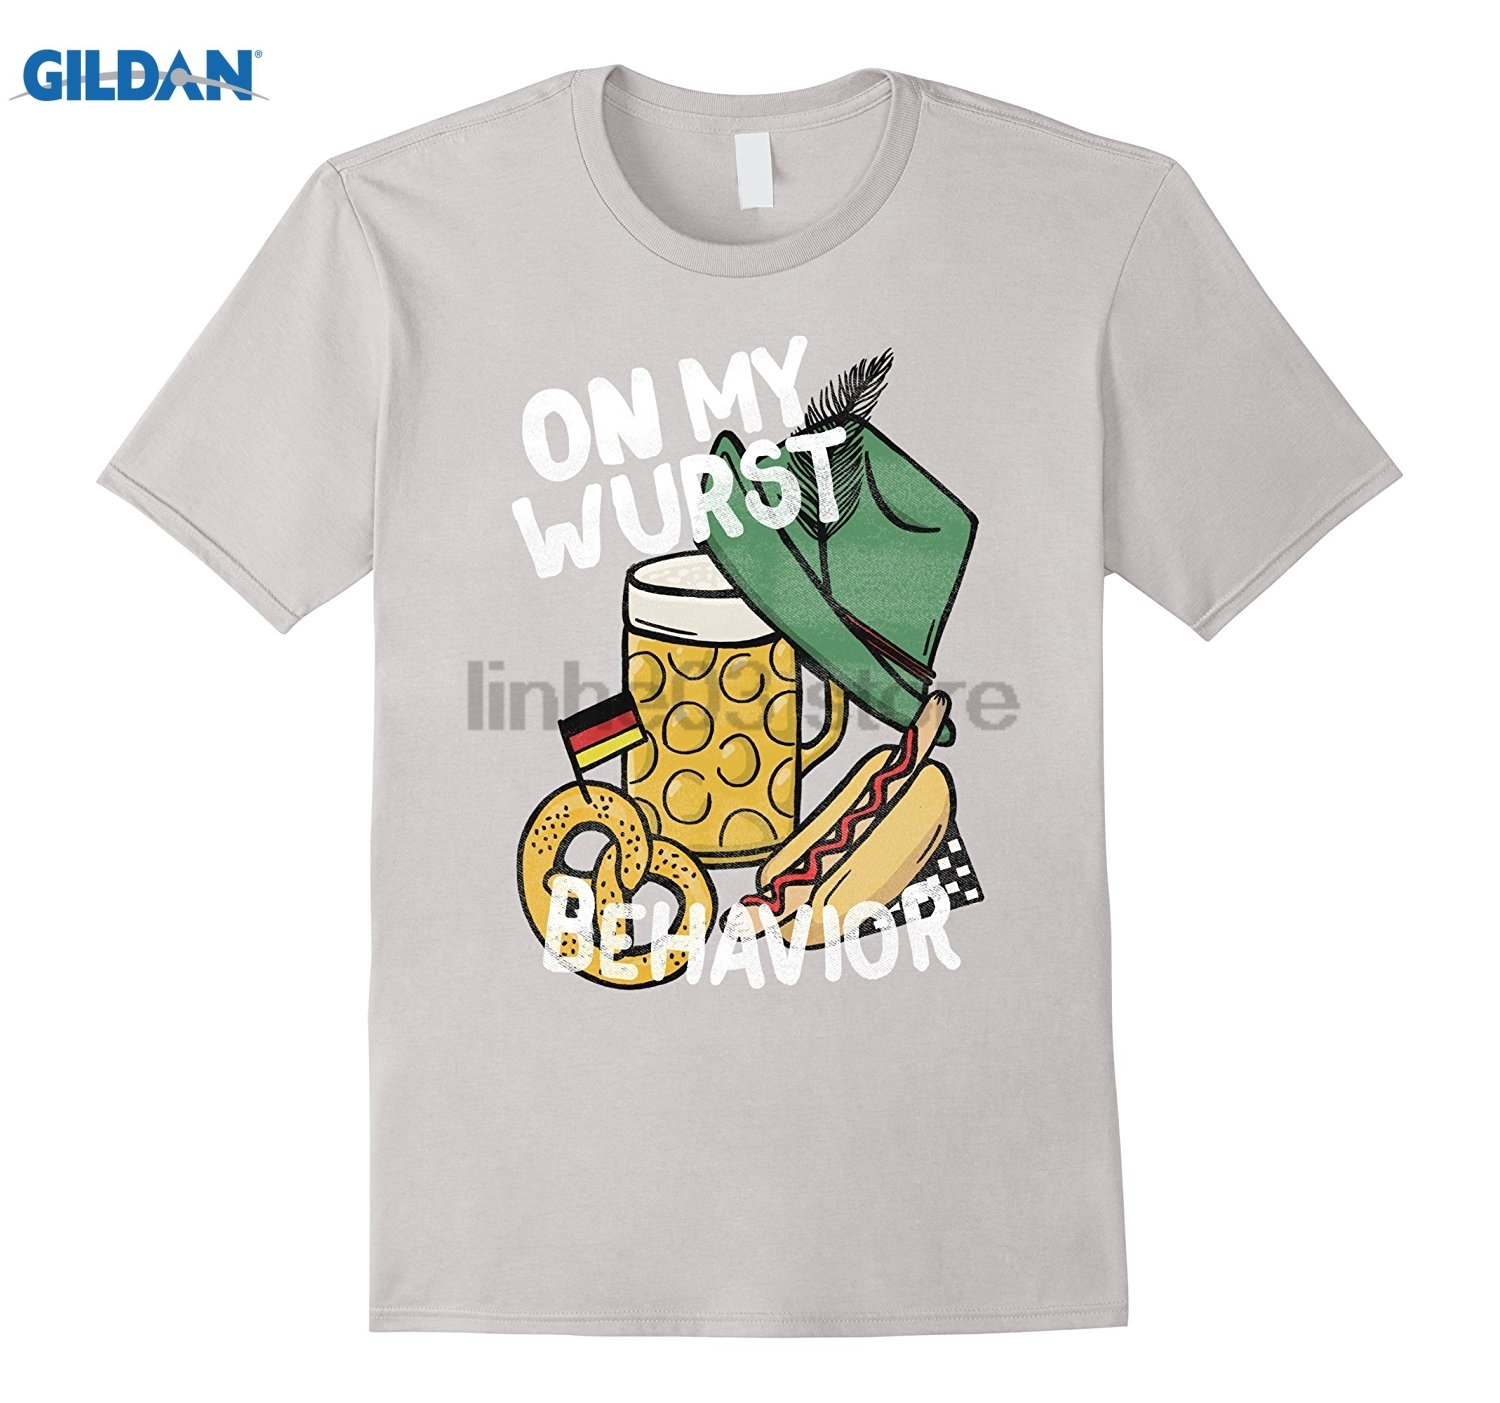 GILDAN Oktoberfest Shirt - On My Wurst Behavior German Beer Tee Womens T-shirt ...